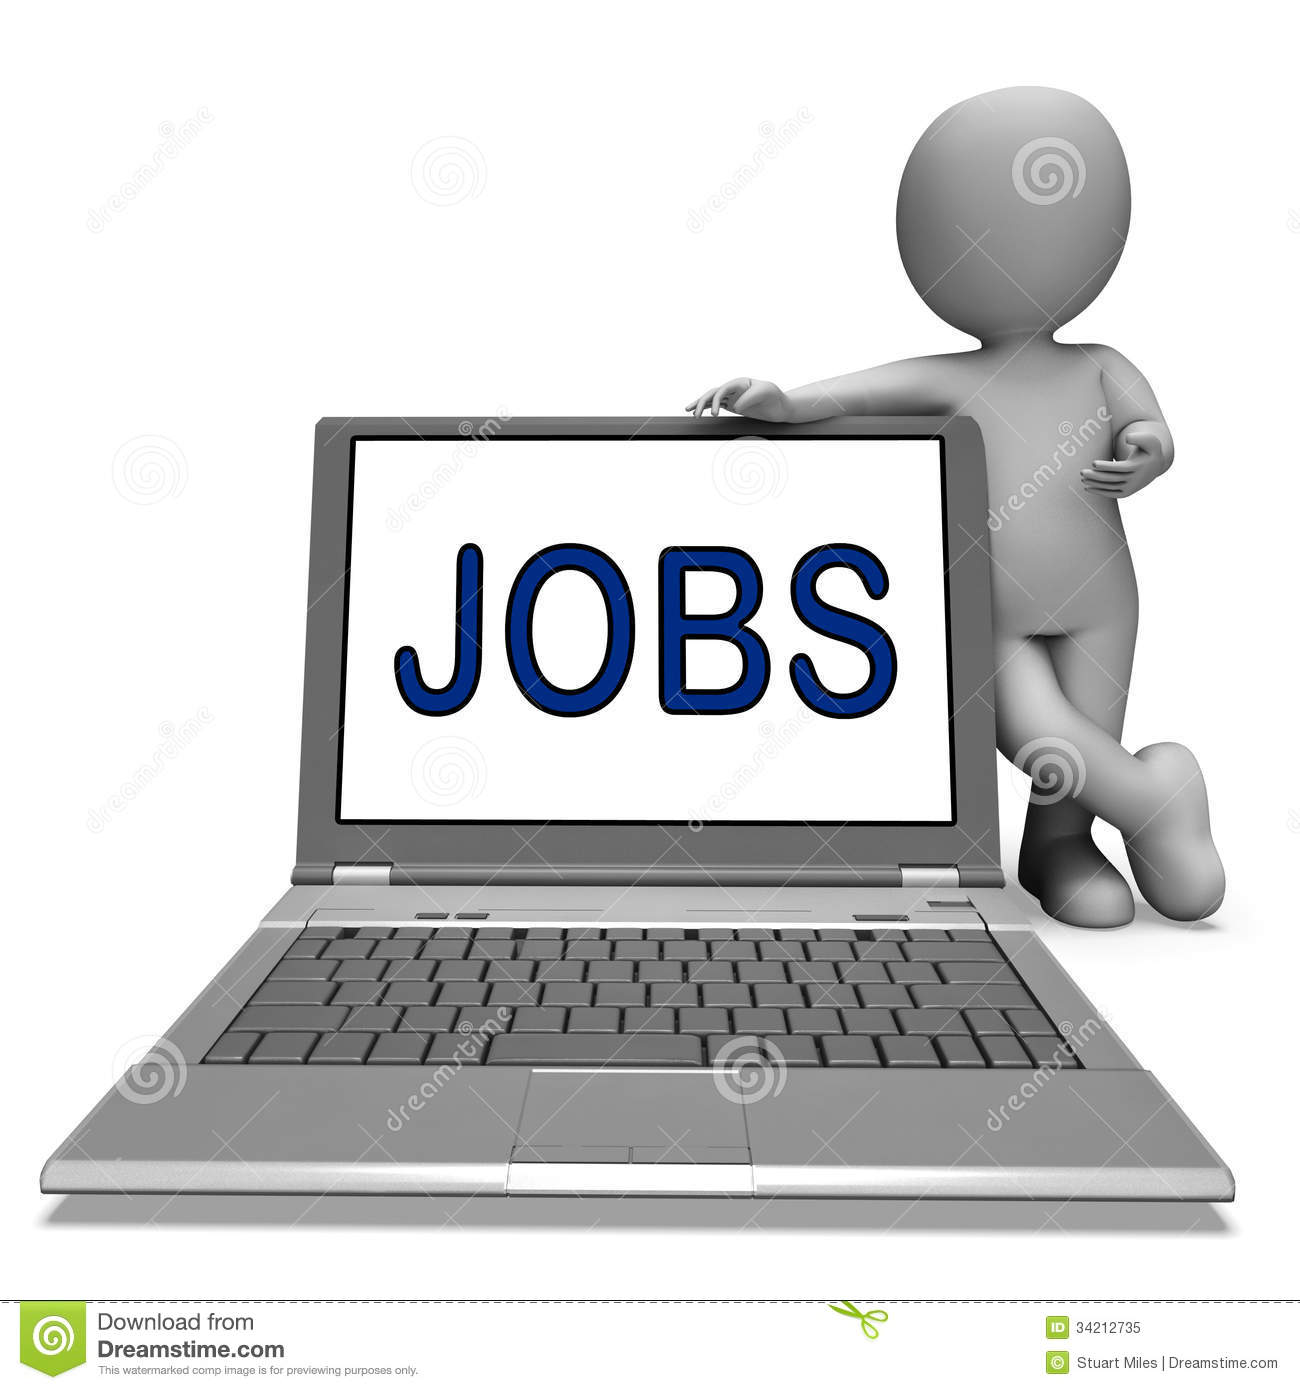 jobs on laptop shows profession employment or hiring online jobs on laptop shows profession employment or hiring online